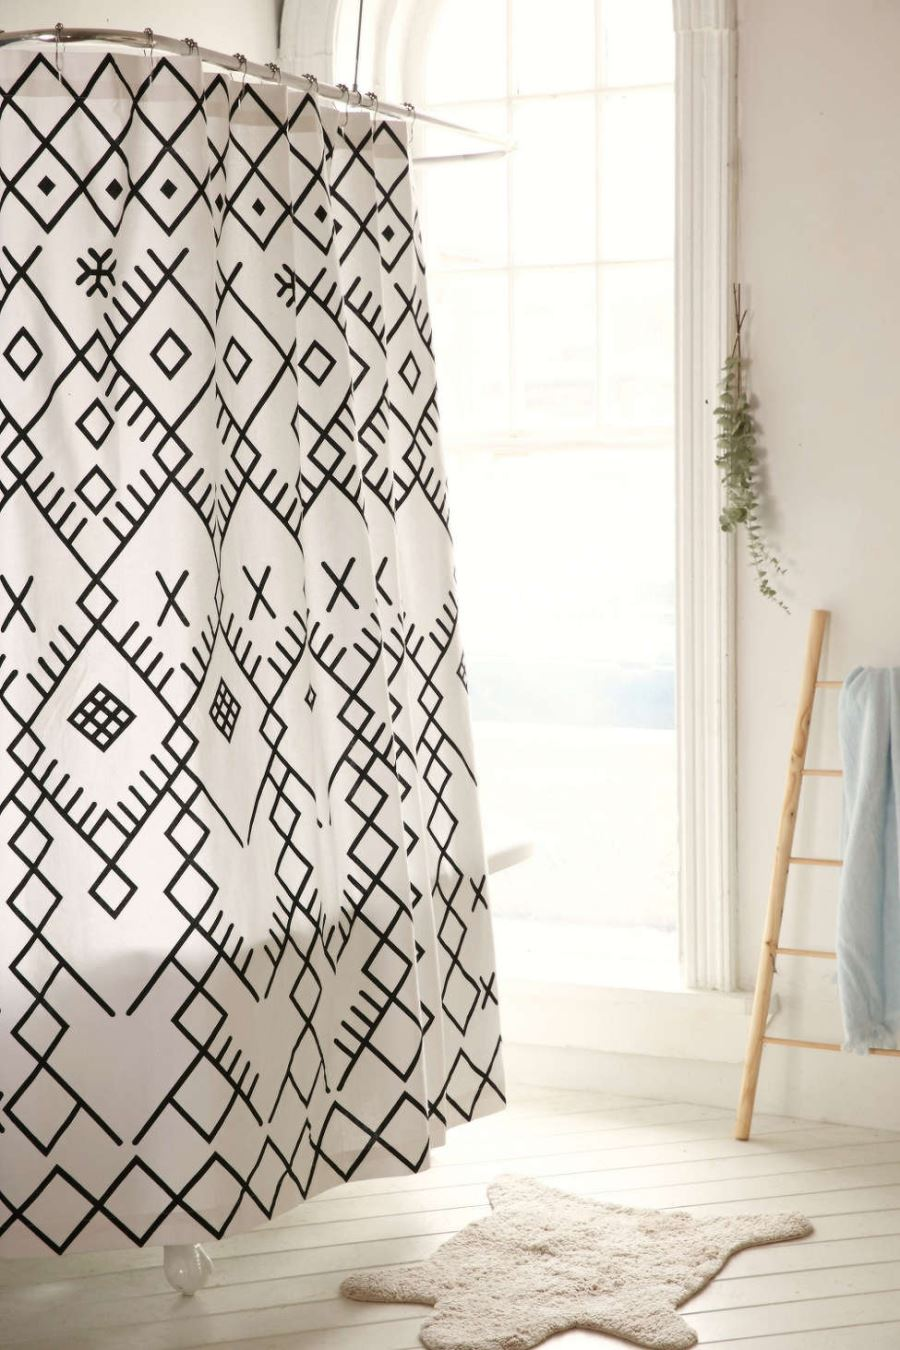 Black and white geo shower curtain from Urban Outfitters